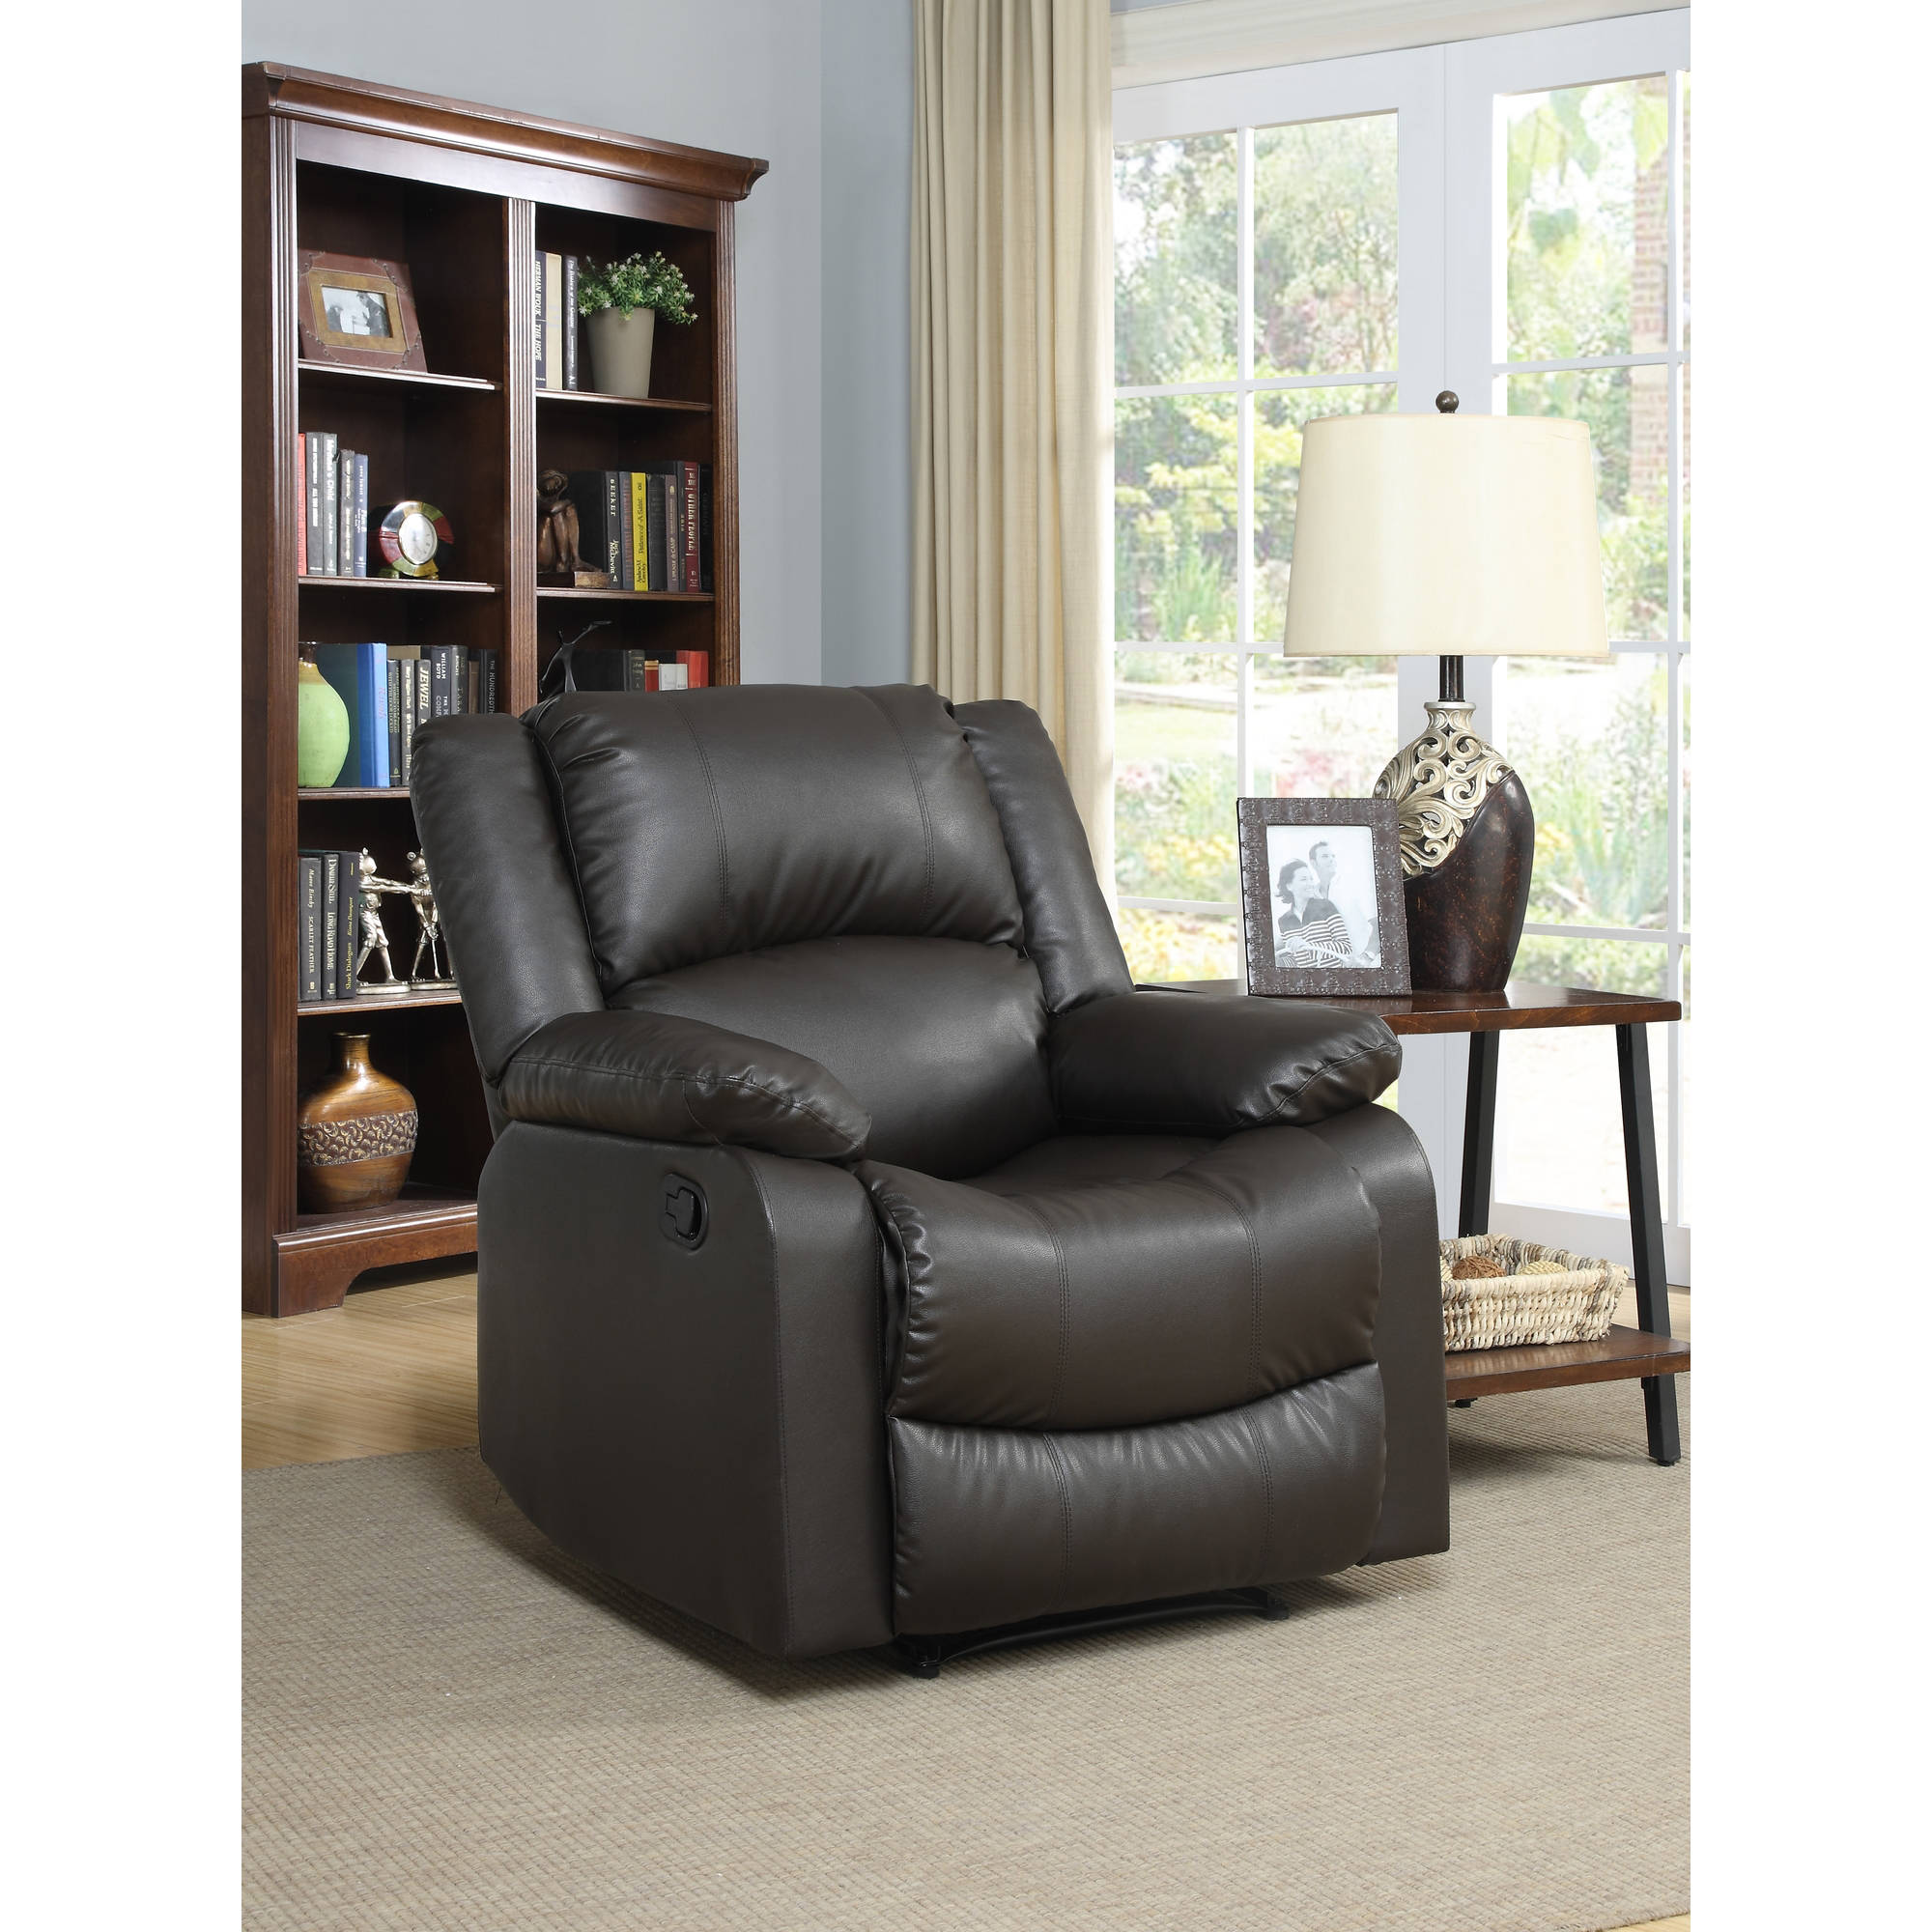 Warren Recliner Single Chair in Java Leather